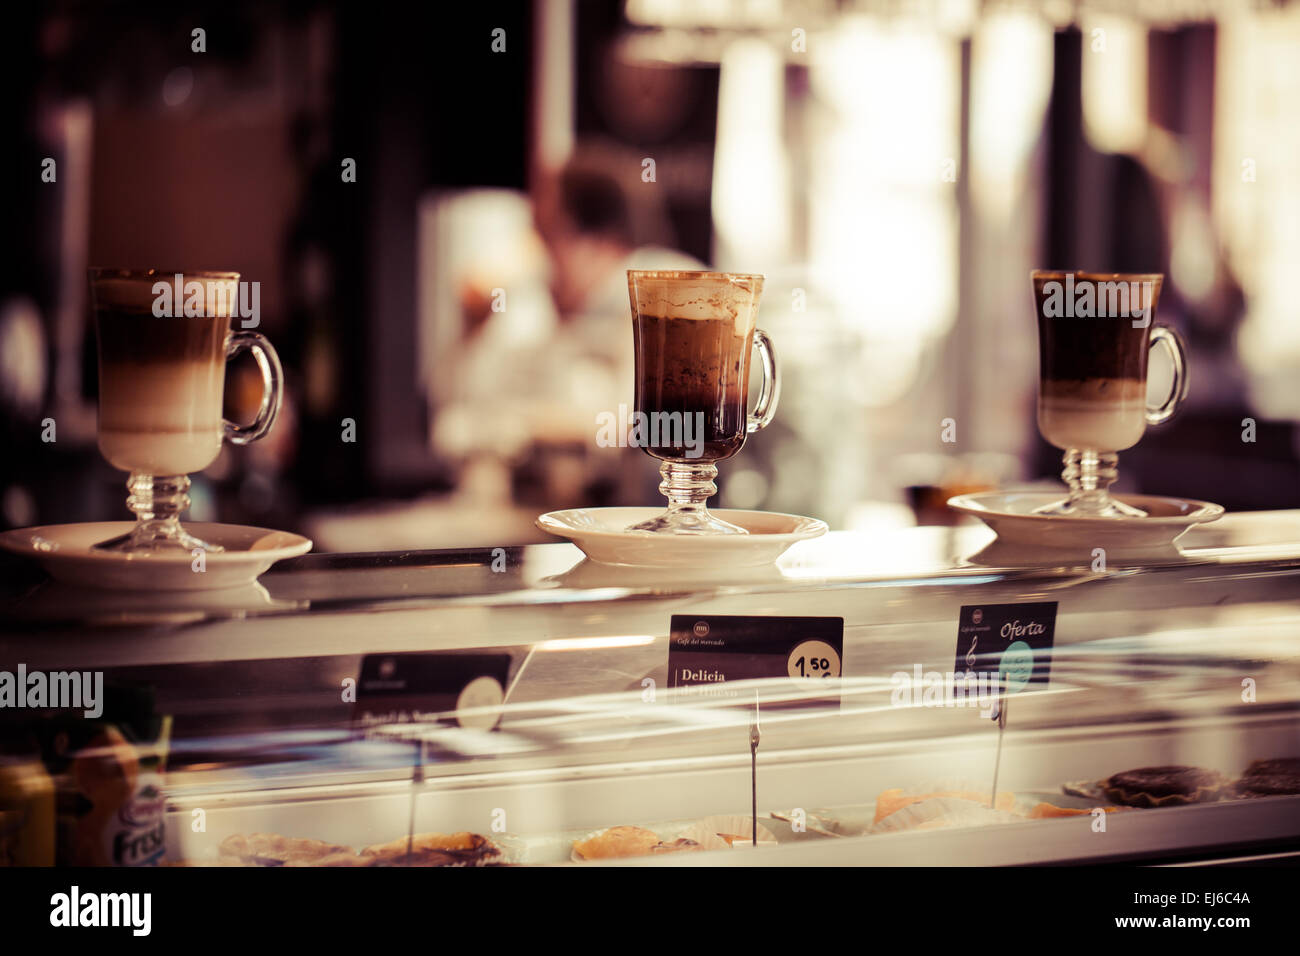 Cafe Coffee Latte In A Glass Stock Photo Alamy